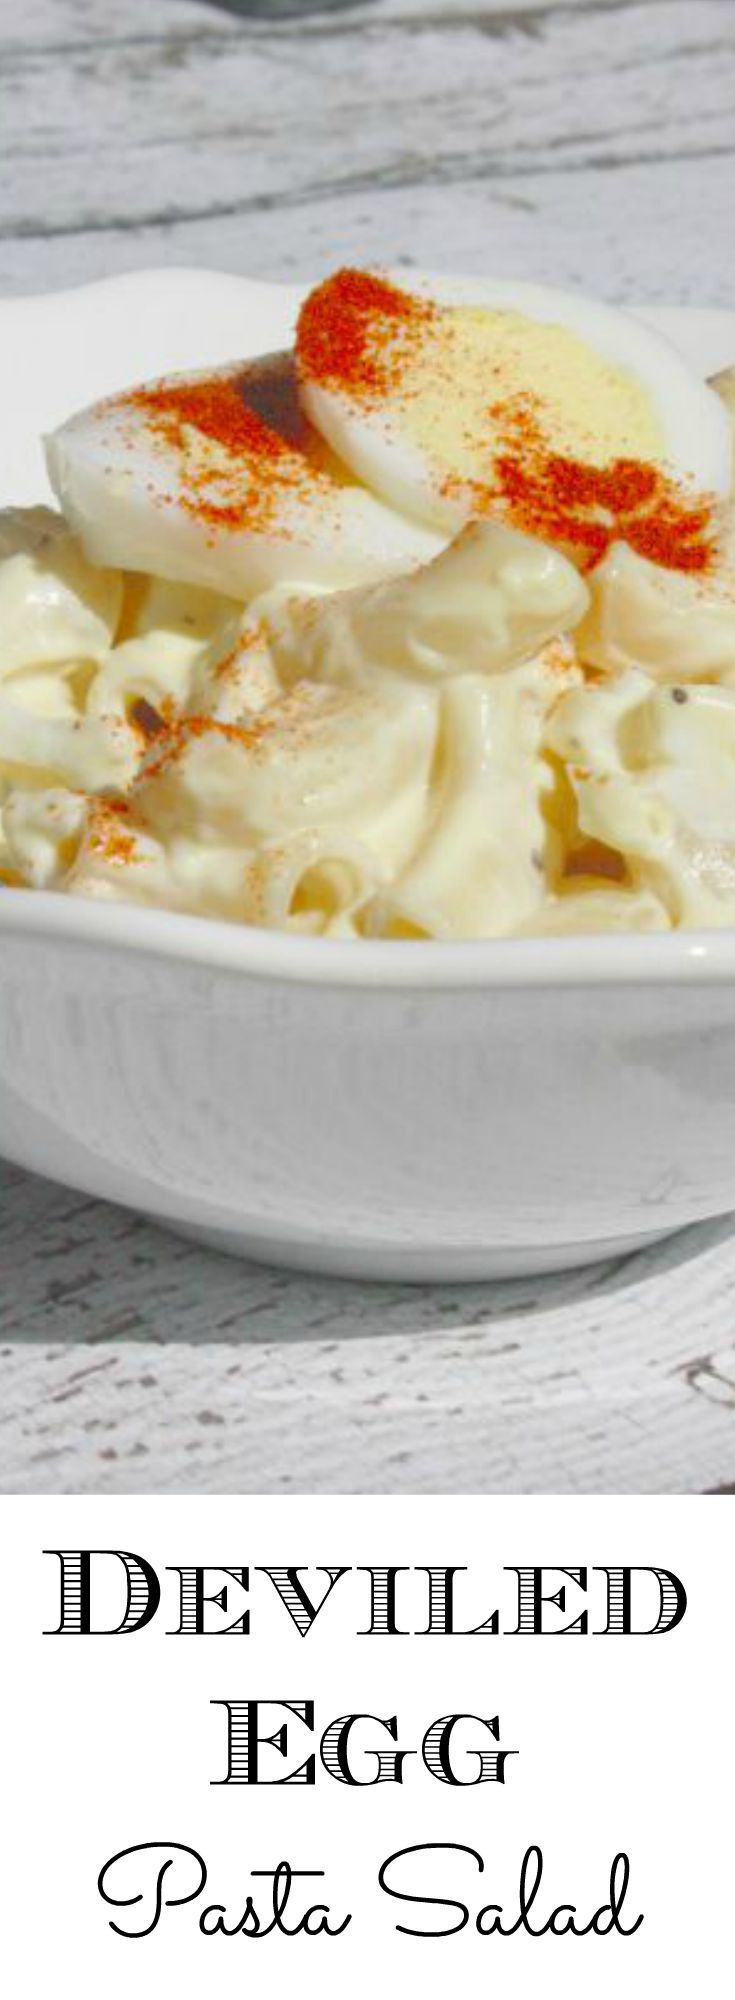 Are you looking for easy side dishes? This deviled egg pasta salad recipe is one you have to try. Forget the funeral potatoes, make this one instead!   http://couponcravings.com/deviled-egg-pasta-salad/